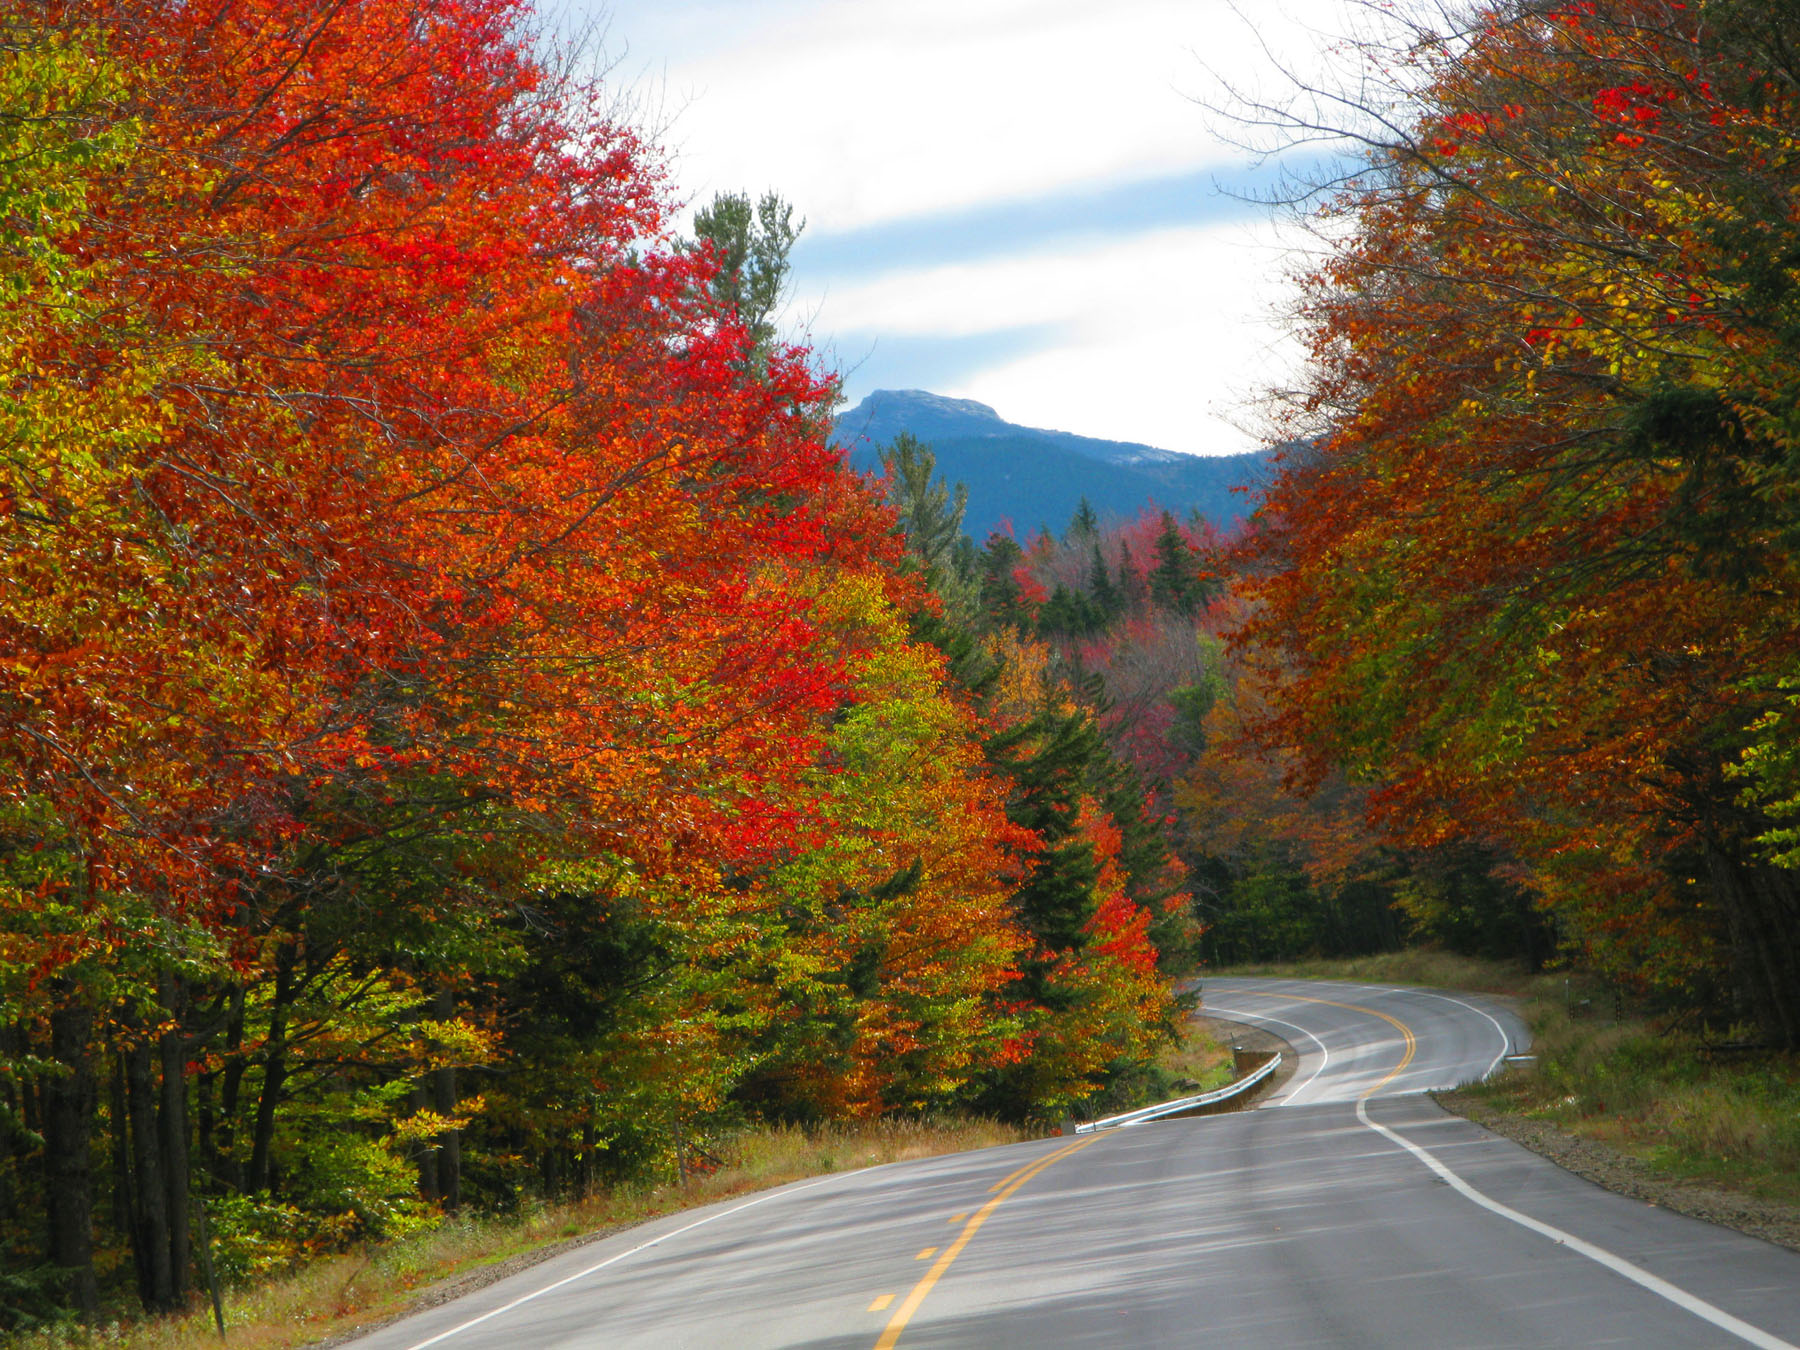 Fall colors make the Kancamagus Highway an incredible fall destination. Photo courtesy of Ellen Edersheim/White Mountains Attractions.